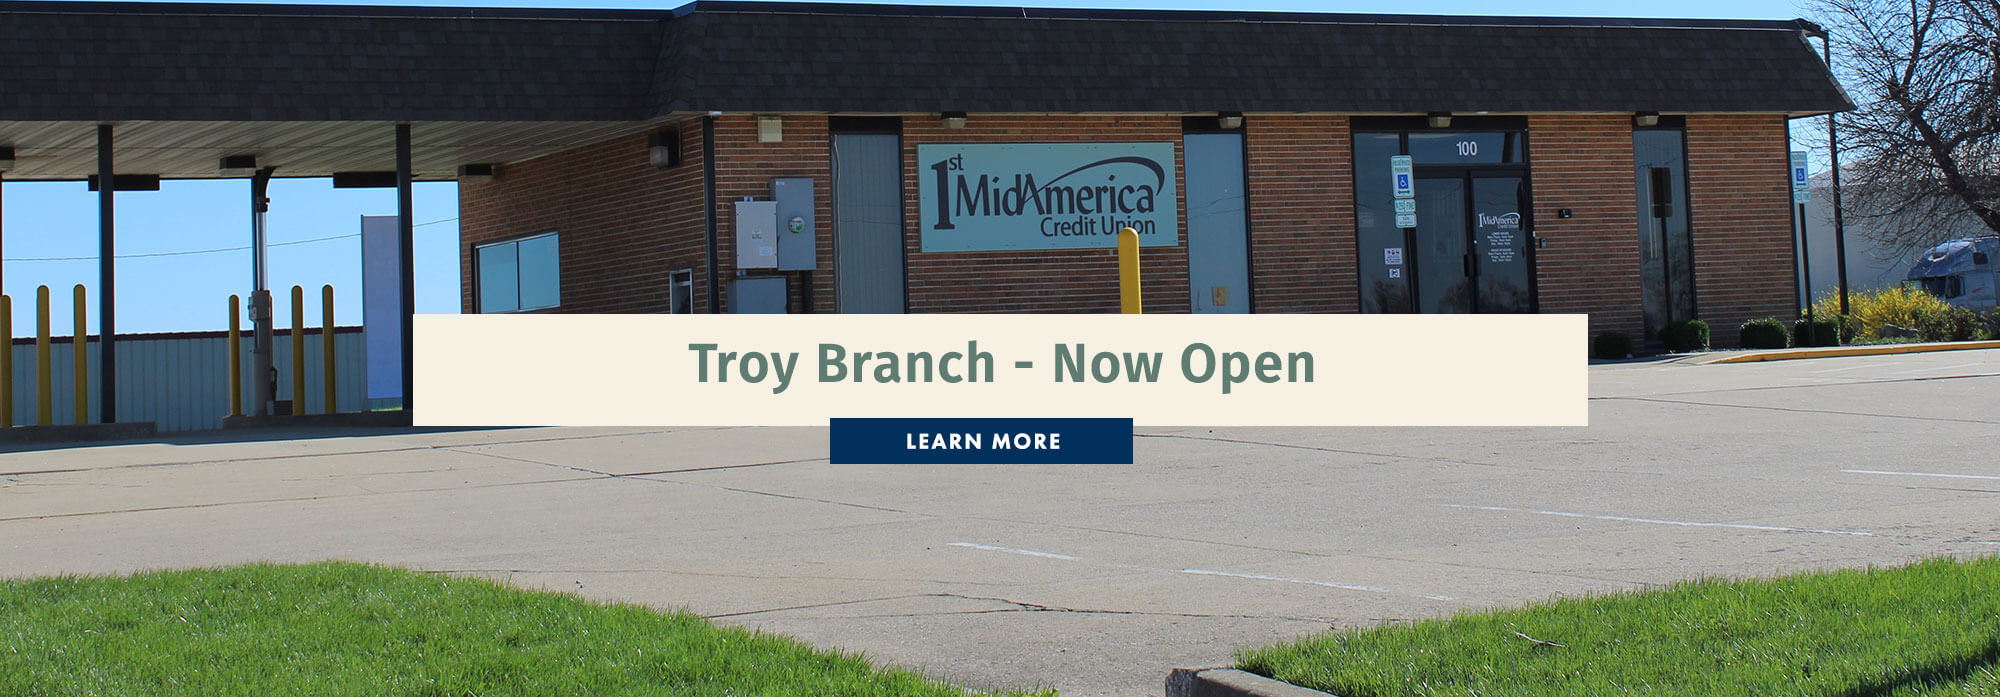 Troy Branch Now Open